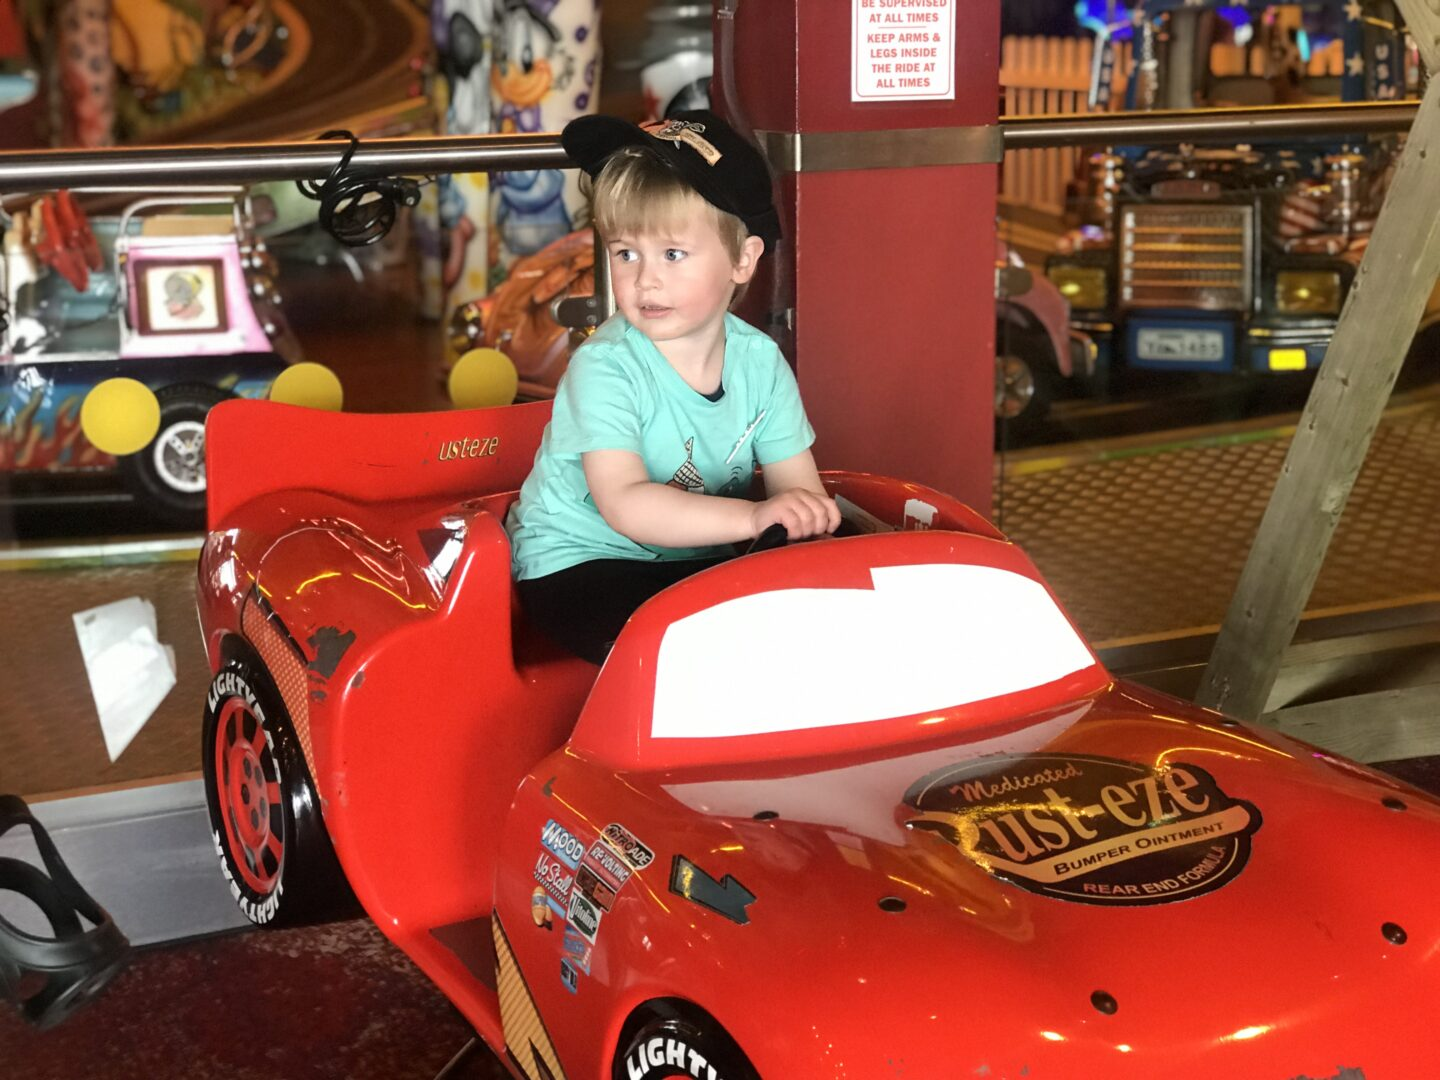 Dexter on the lightening mcqueen ride on in coral island, blackpool